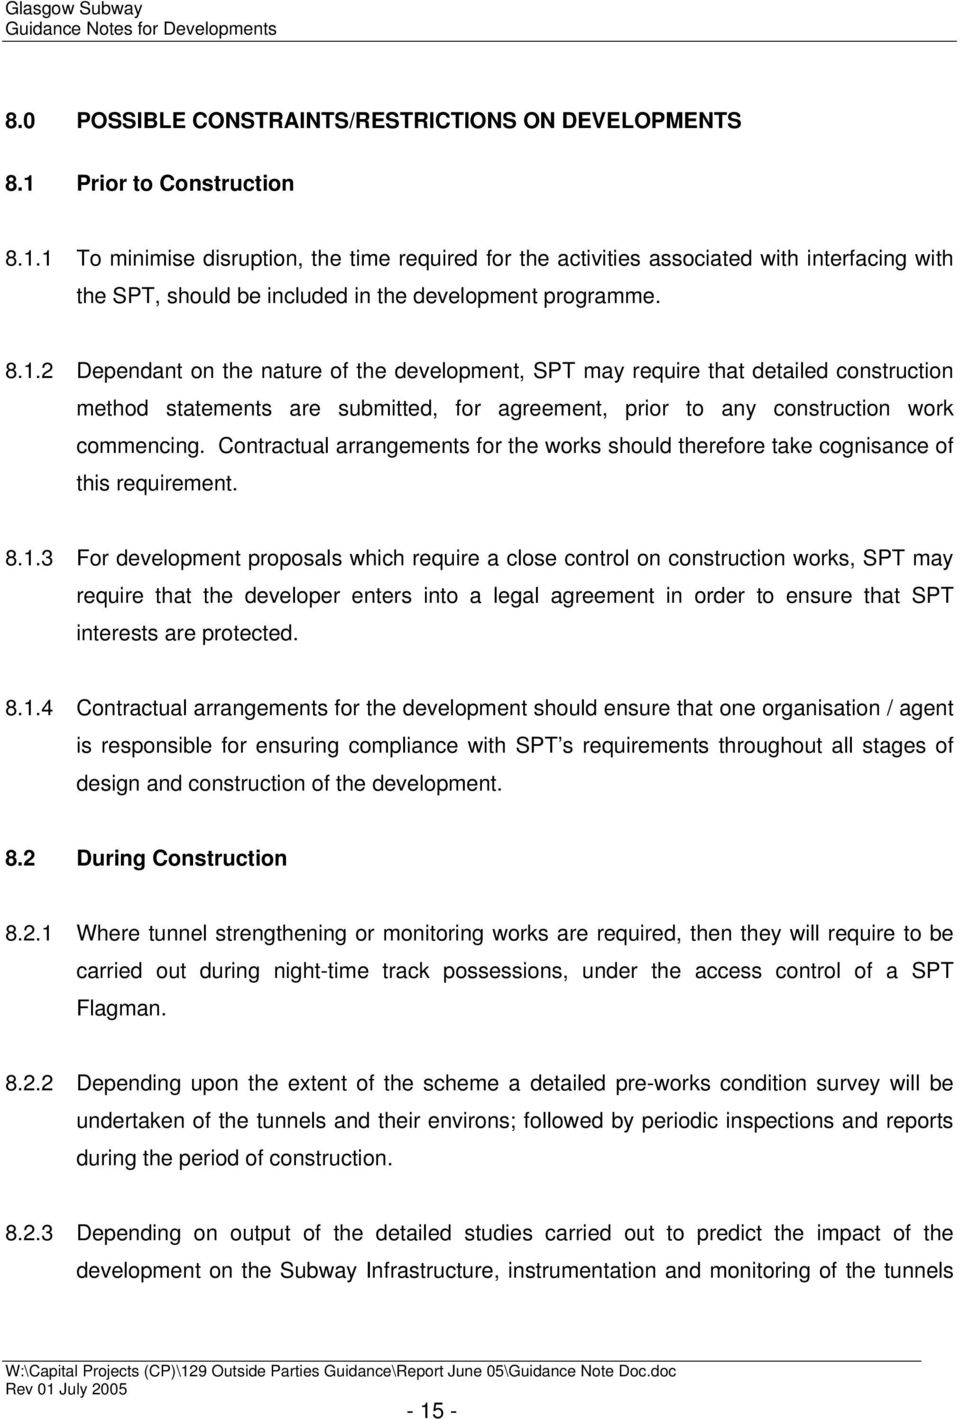 1 To minimise disruption, the time required for the activities associated with interfacing with the SPT, should be included in the development programme. 8.1.2 Dependant on the nature of the development, SPT may require that detailed construction method statements are submitted, for agreement, prior to any construction work commencing.